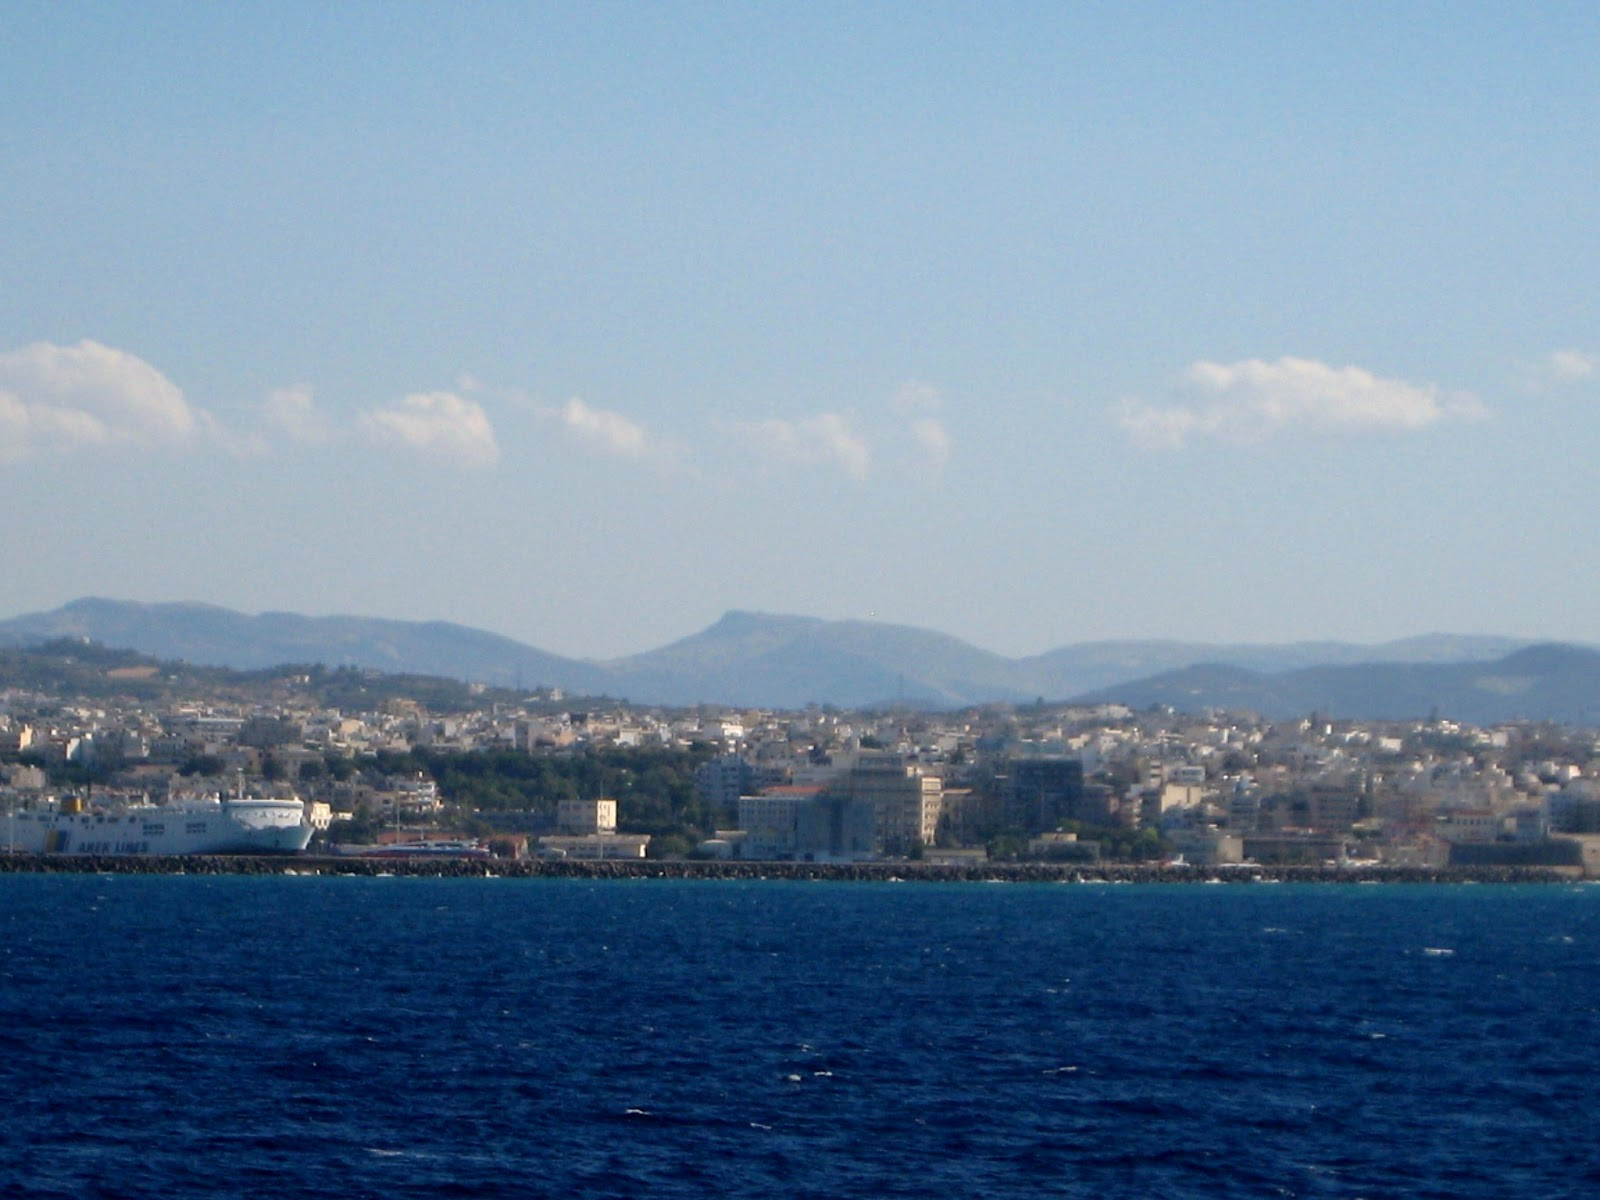 Putovanje na Krit brodom [foto i video reportaza]; Getting to Crete by ferry-boat (photo and video)